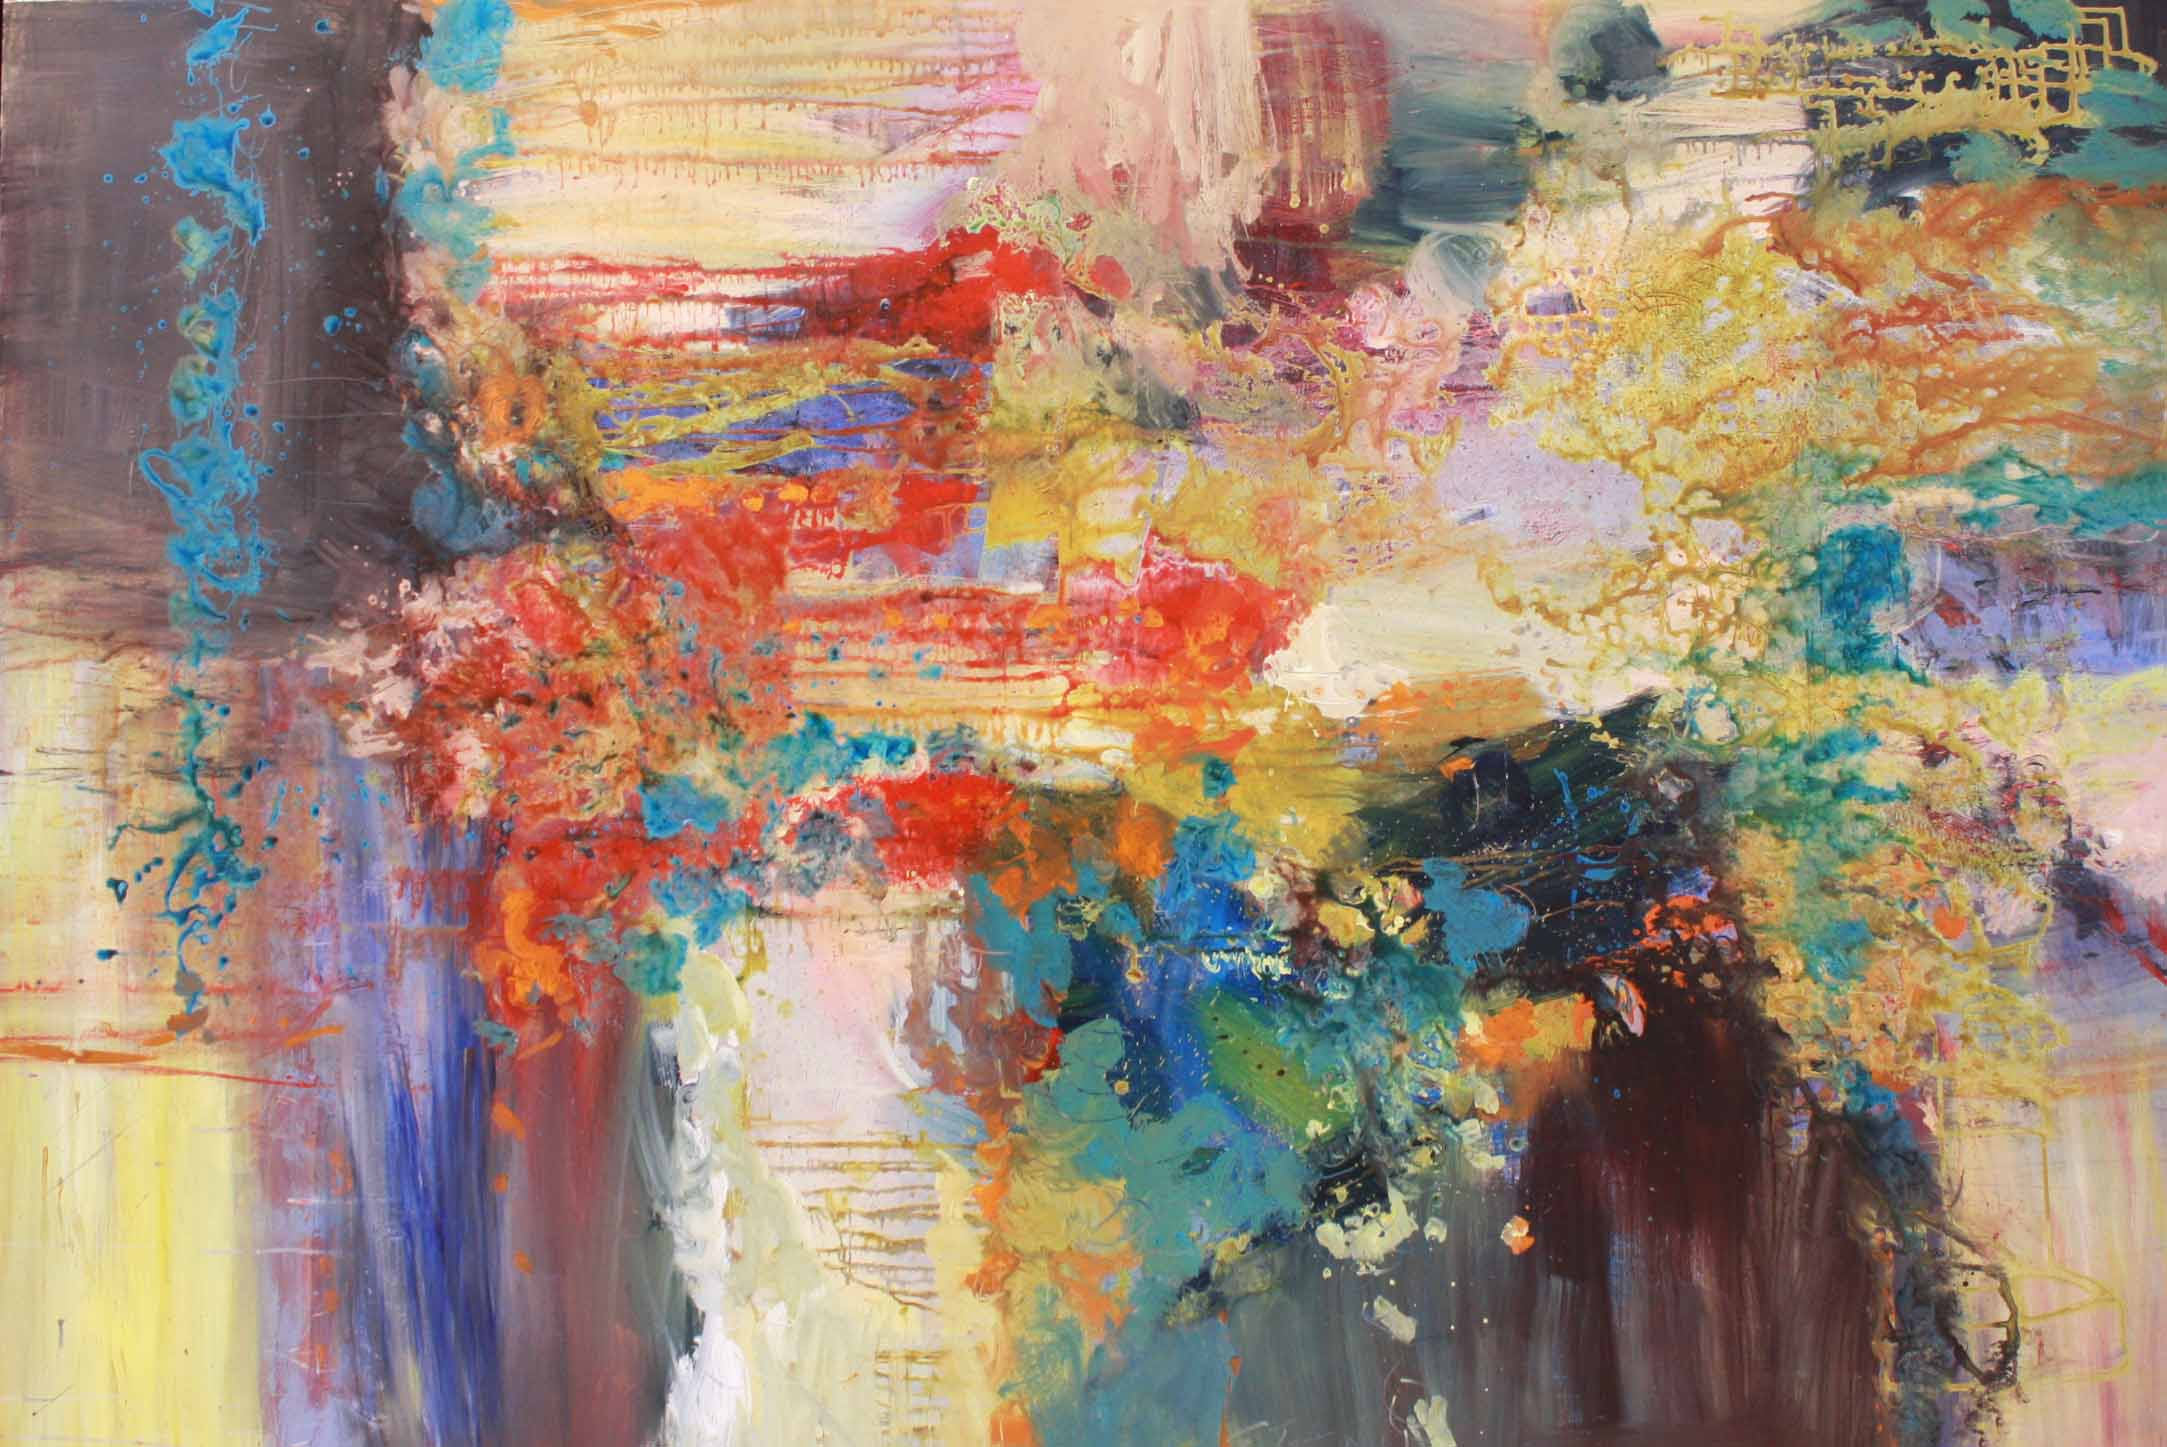 Richard Strauss -Four Last Songs - Im Abendrot 54x80 Acrylic on Canvas SOLD